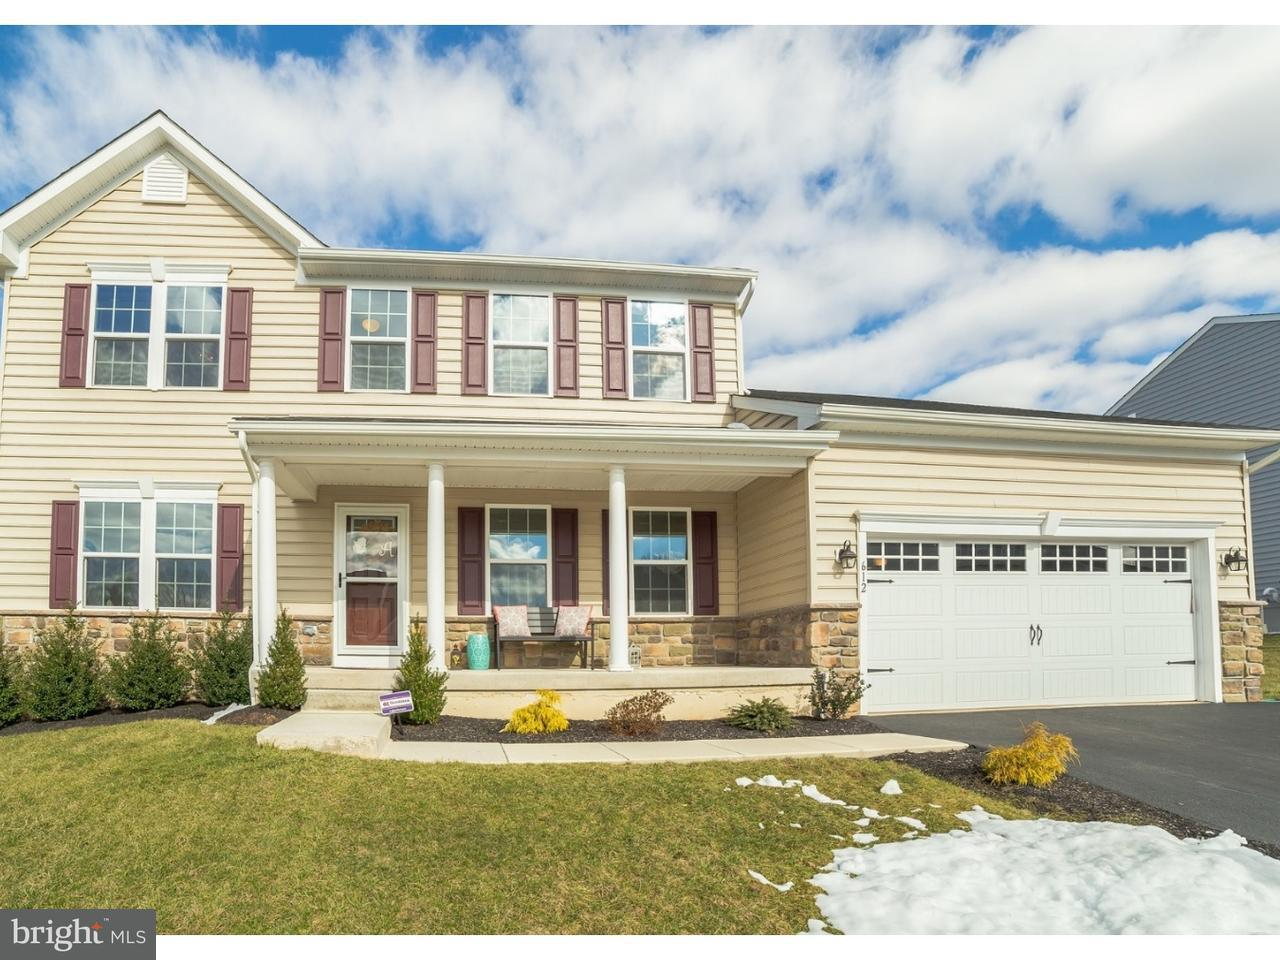 Single Family Home for Sale at 612 HARTZEL WAY Sellersville, Pennsylvania 18960 United States